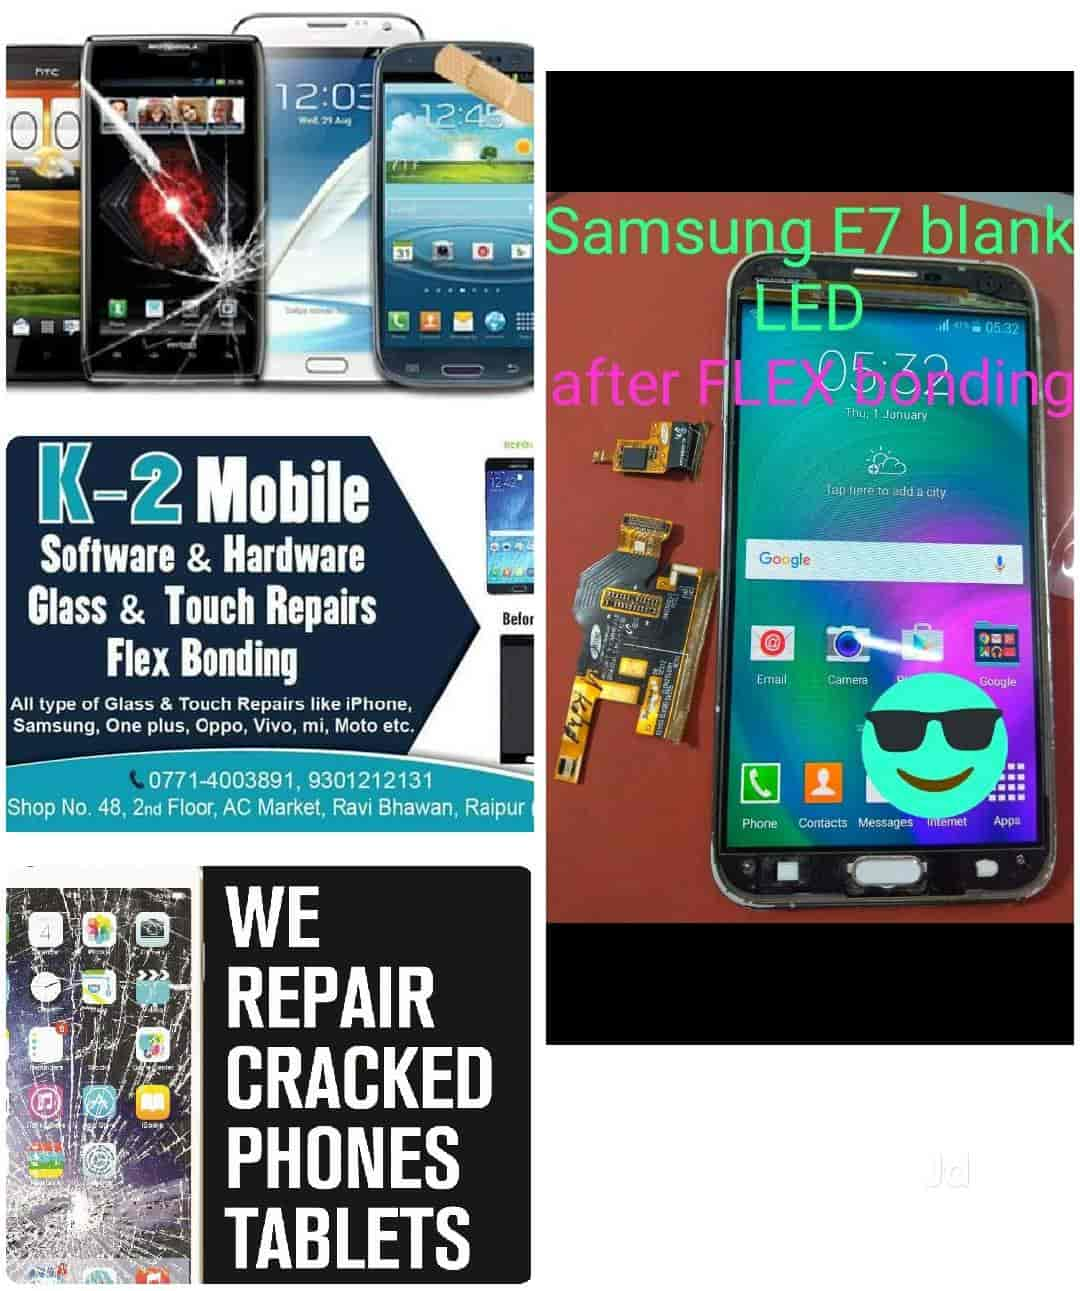 K-2 Mobile Solution - Glass & Touch Repairs Software